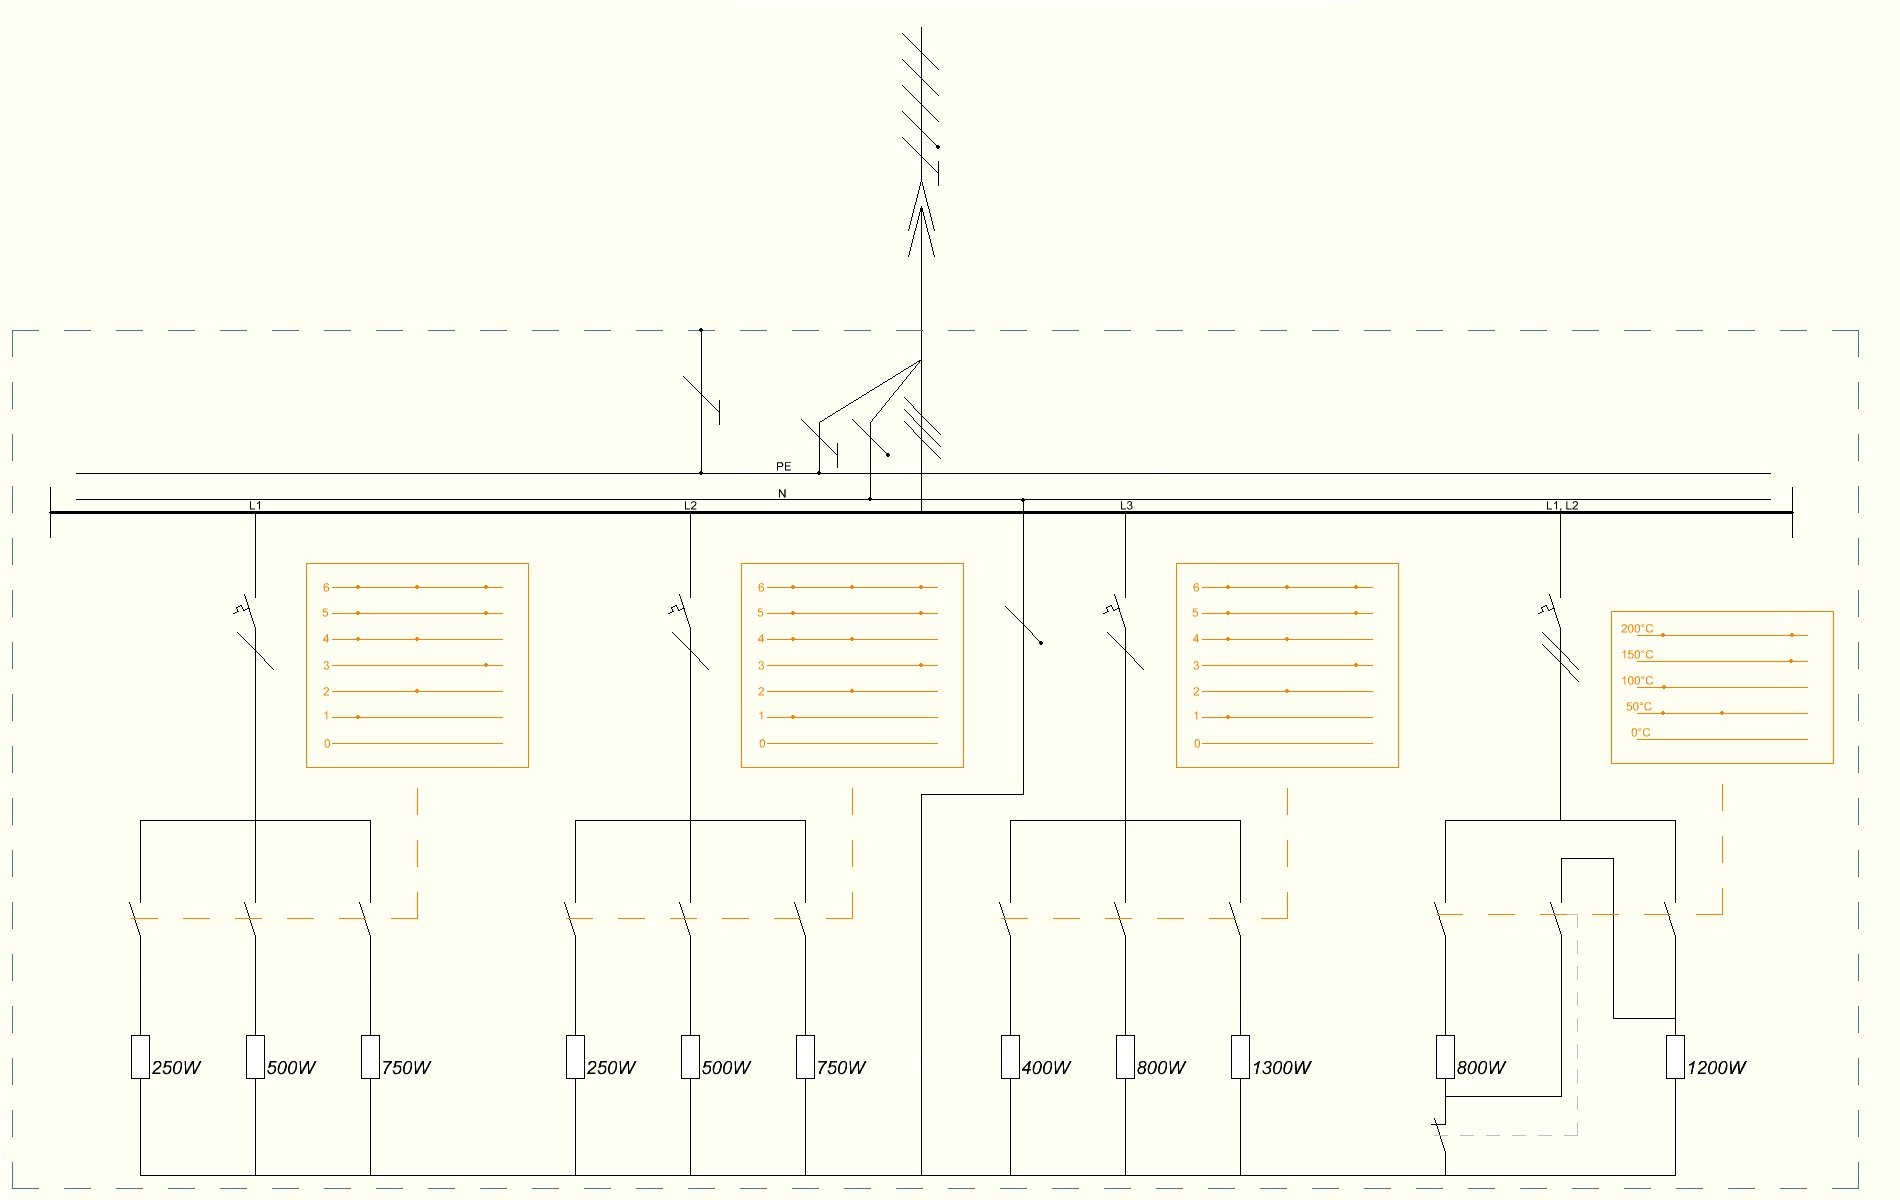 file schematic wiring diagram of electrical stove jpg wikimedia rh commons wikimedia org wiring diagram for kenmore electric stove electric stove wiring diagram pdf